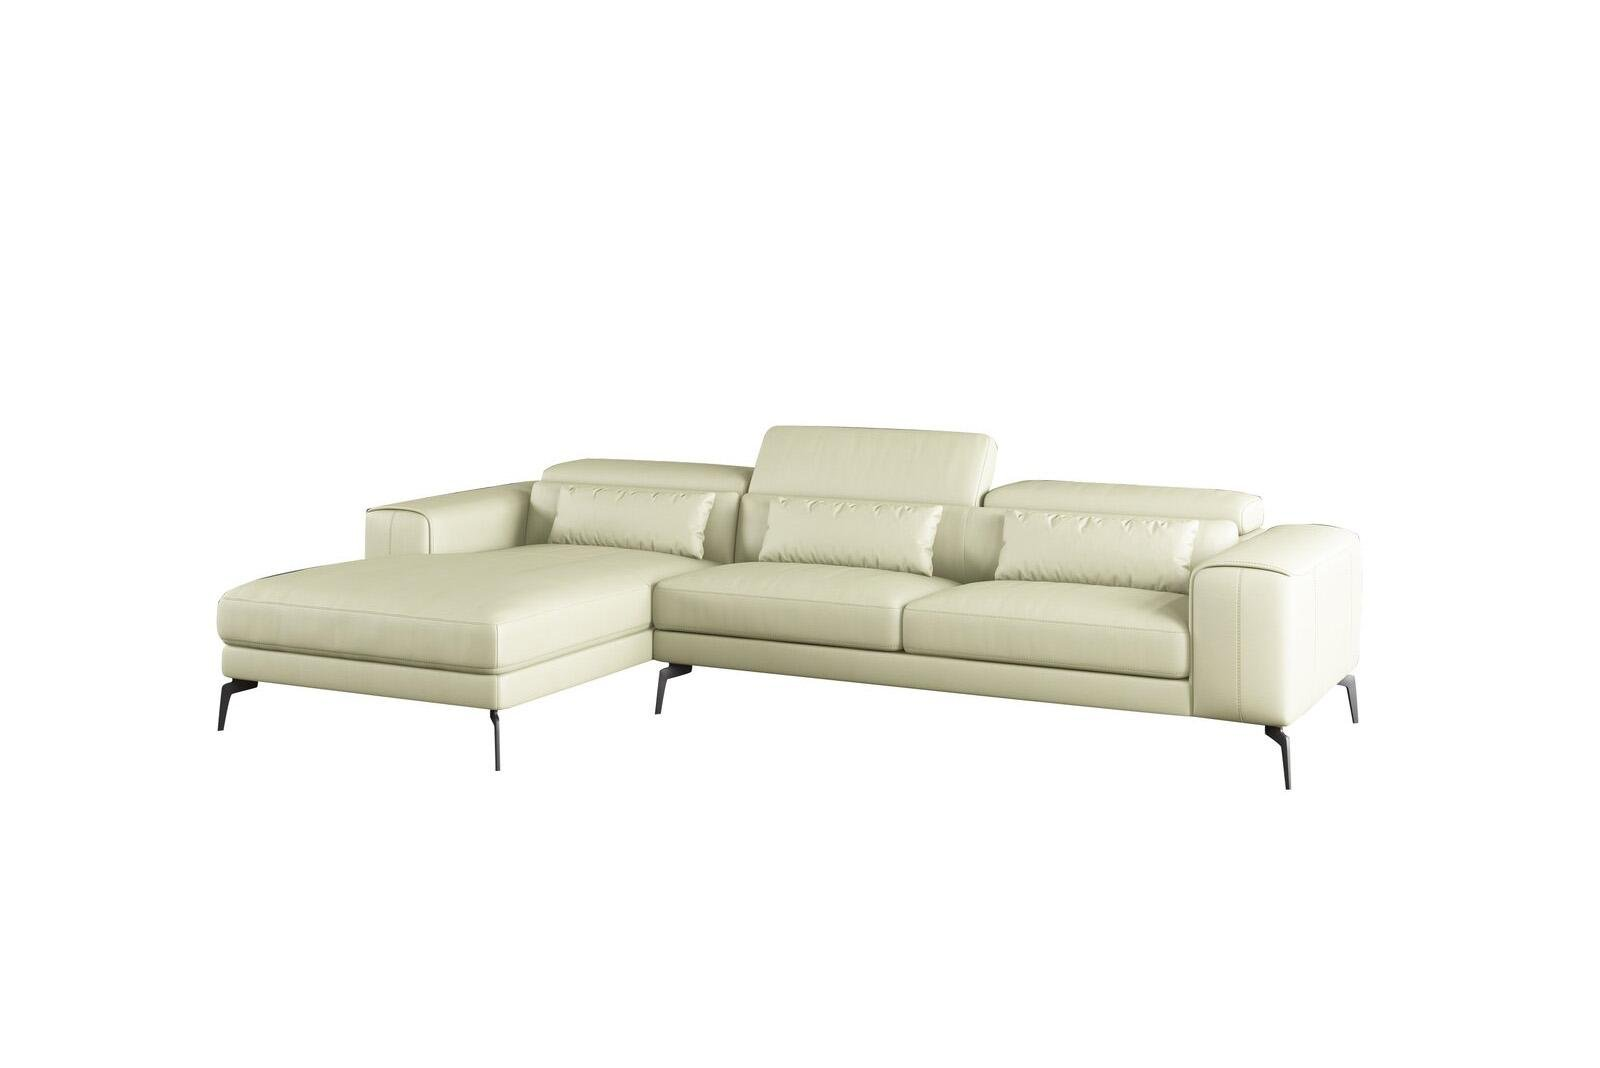 Contemporary, Modern Off-White Leather and Wood, Solid Hardwood Sectional Sofa LHC CAVOUR by European Furniture